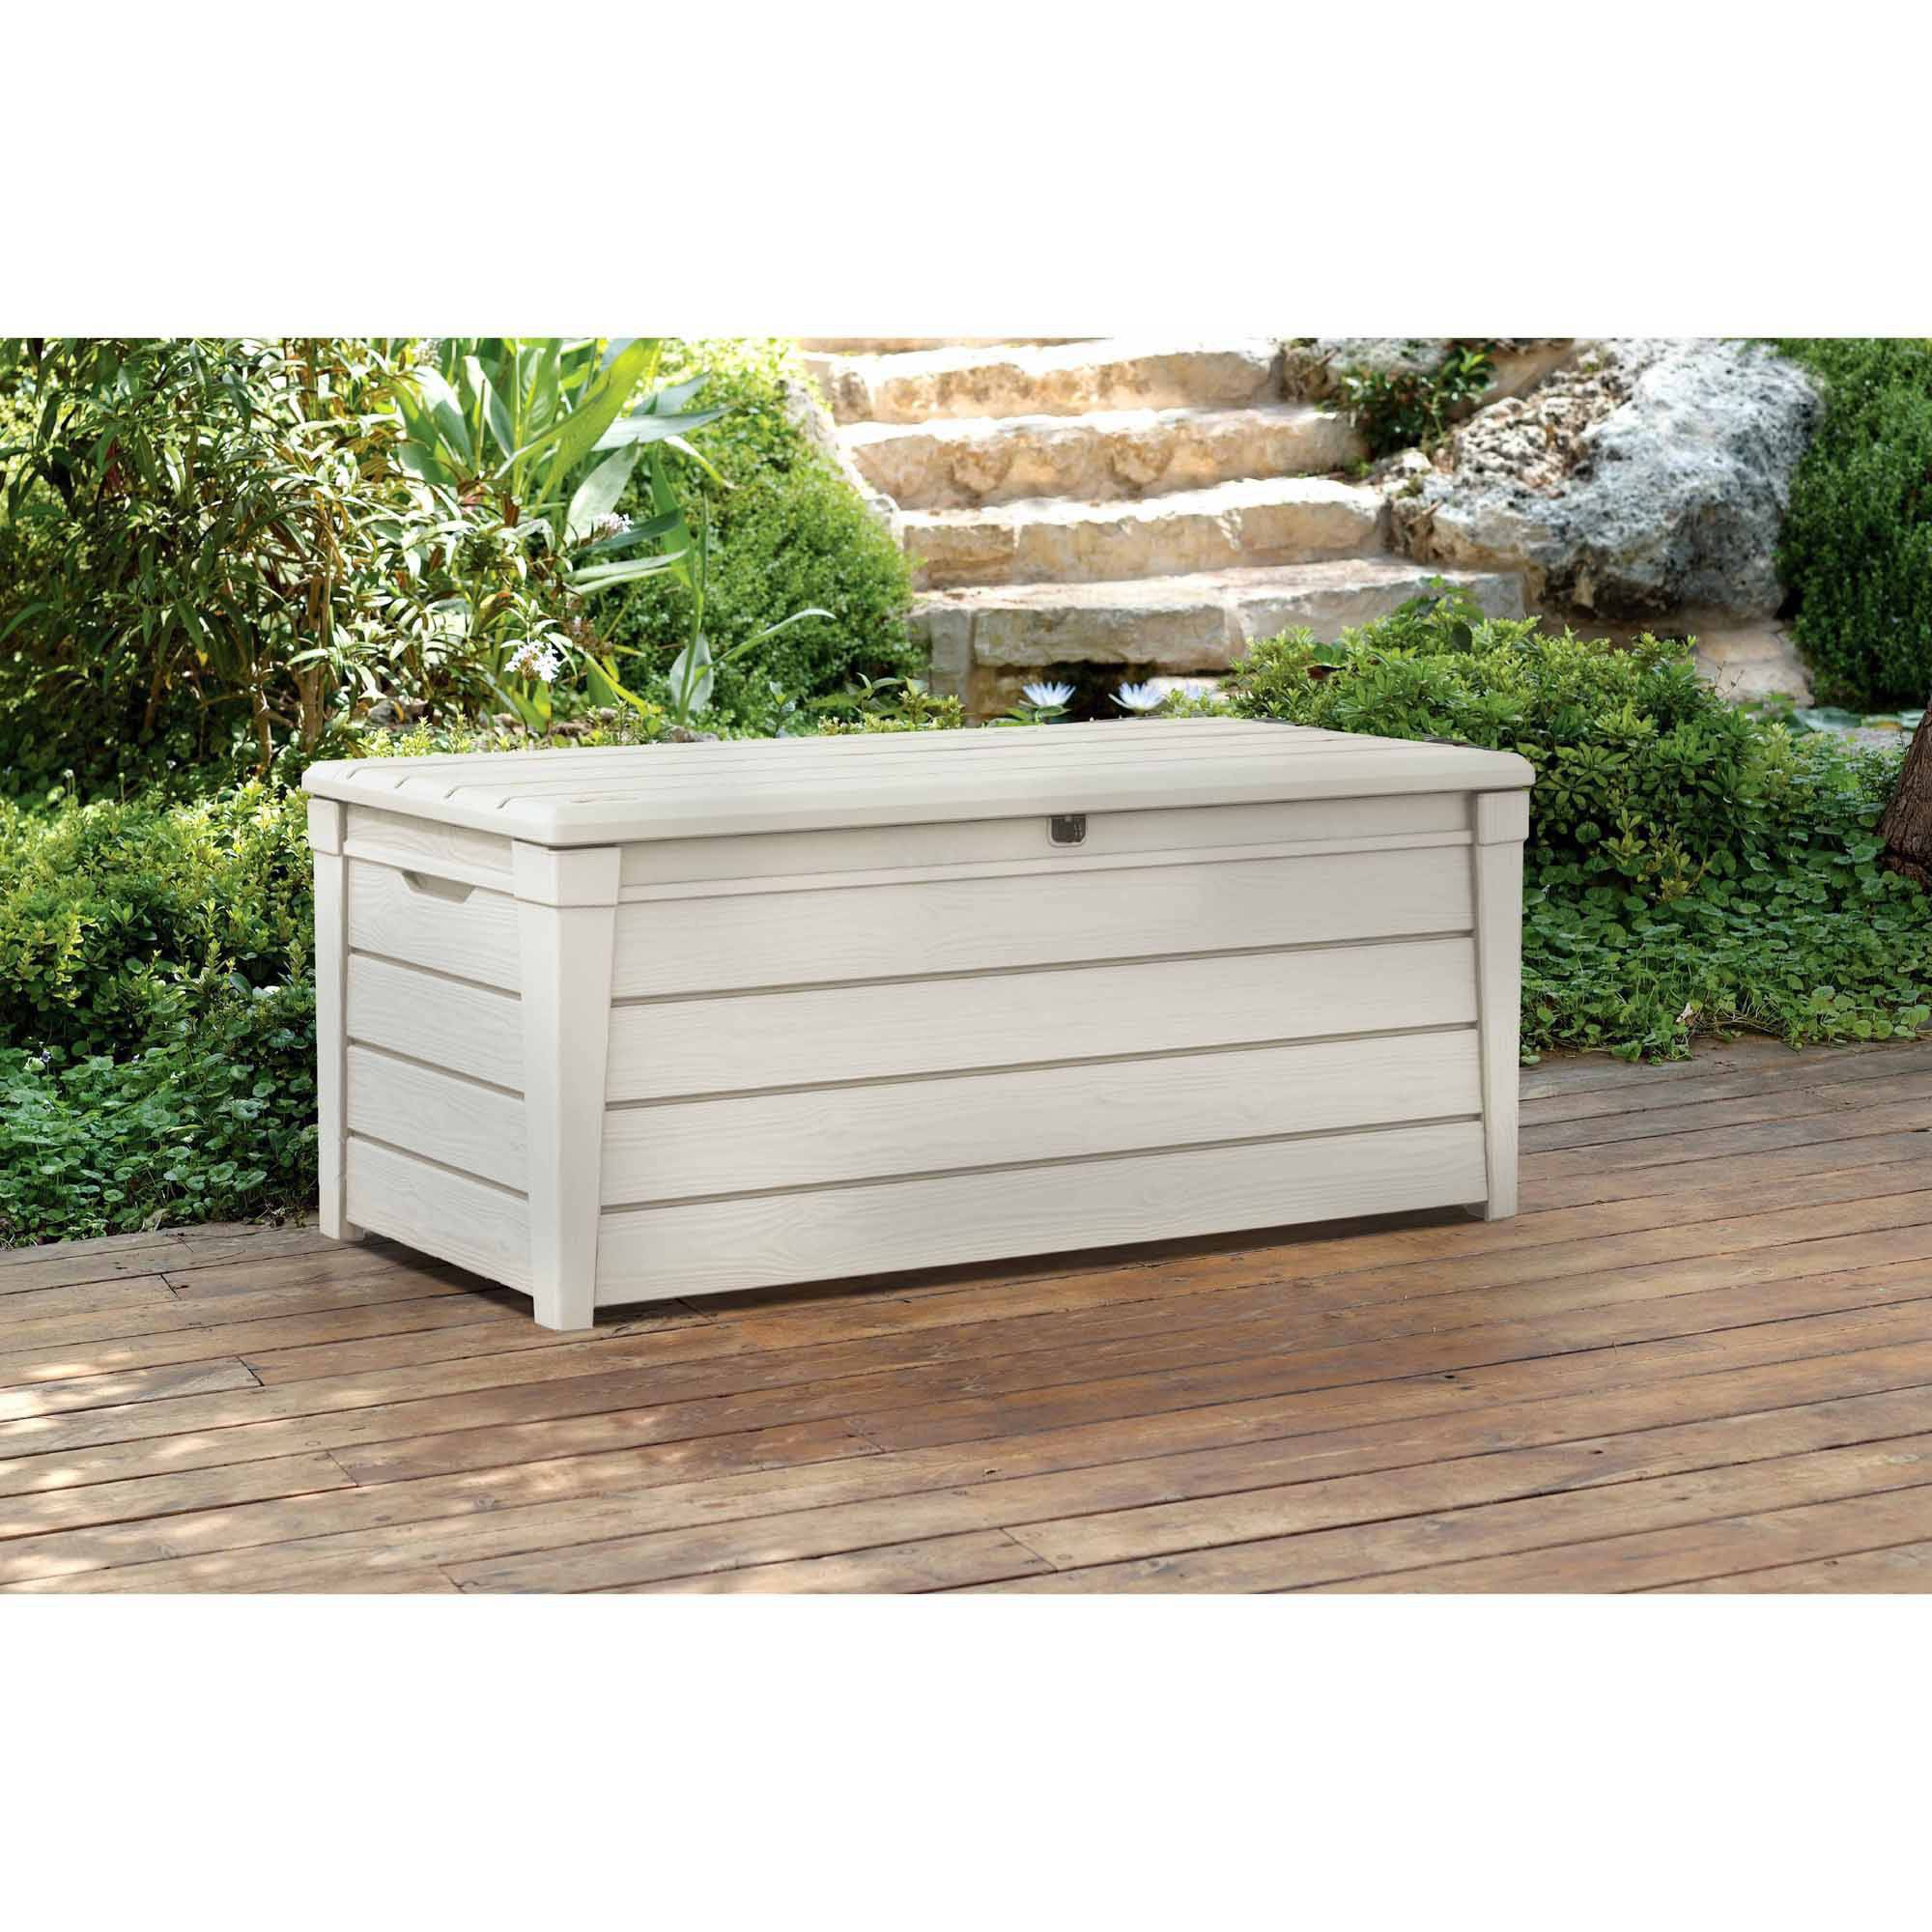 Keter Brightwood Outdoor Plastic Deck Storage Container